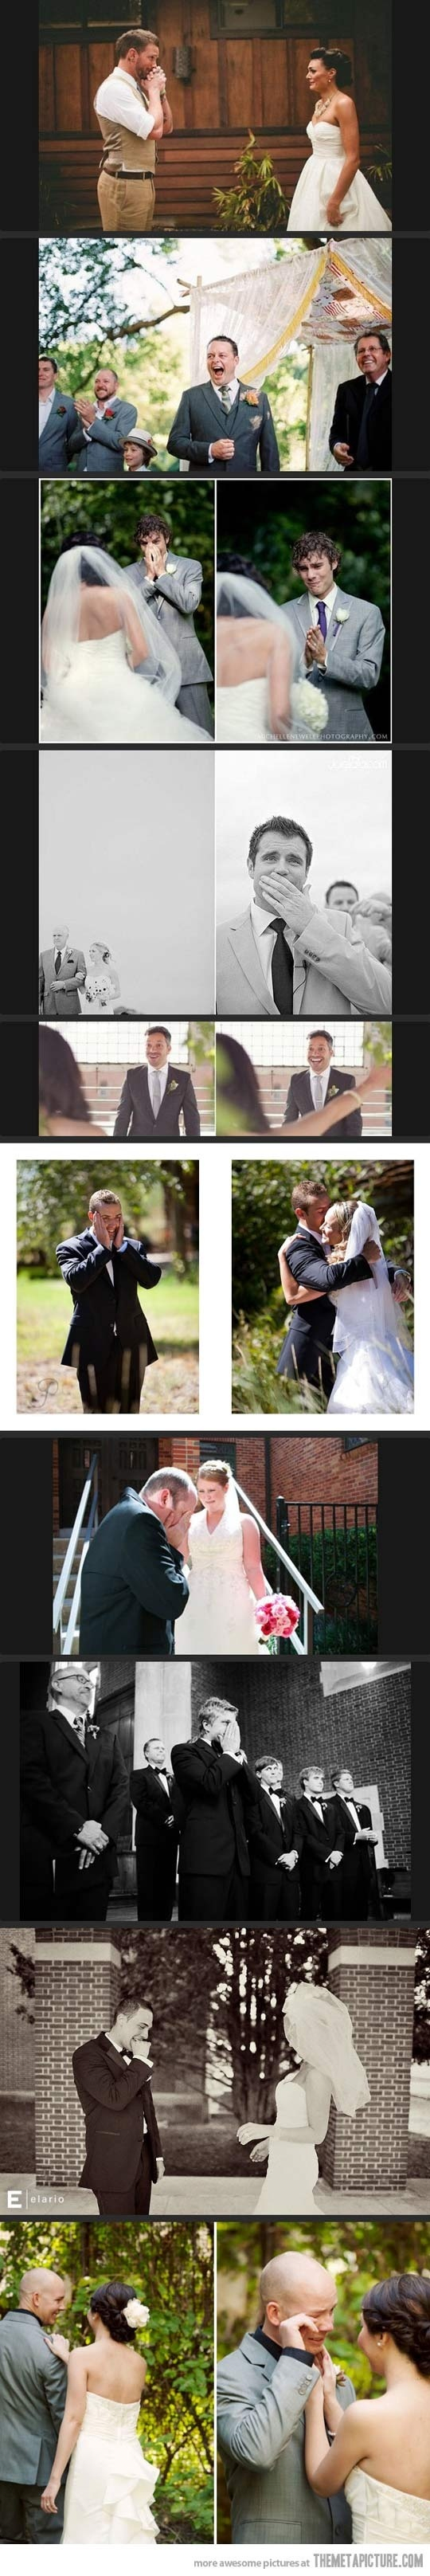 Actual pictures of when the groom first saw the bride...